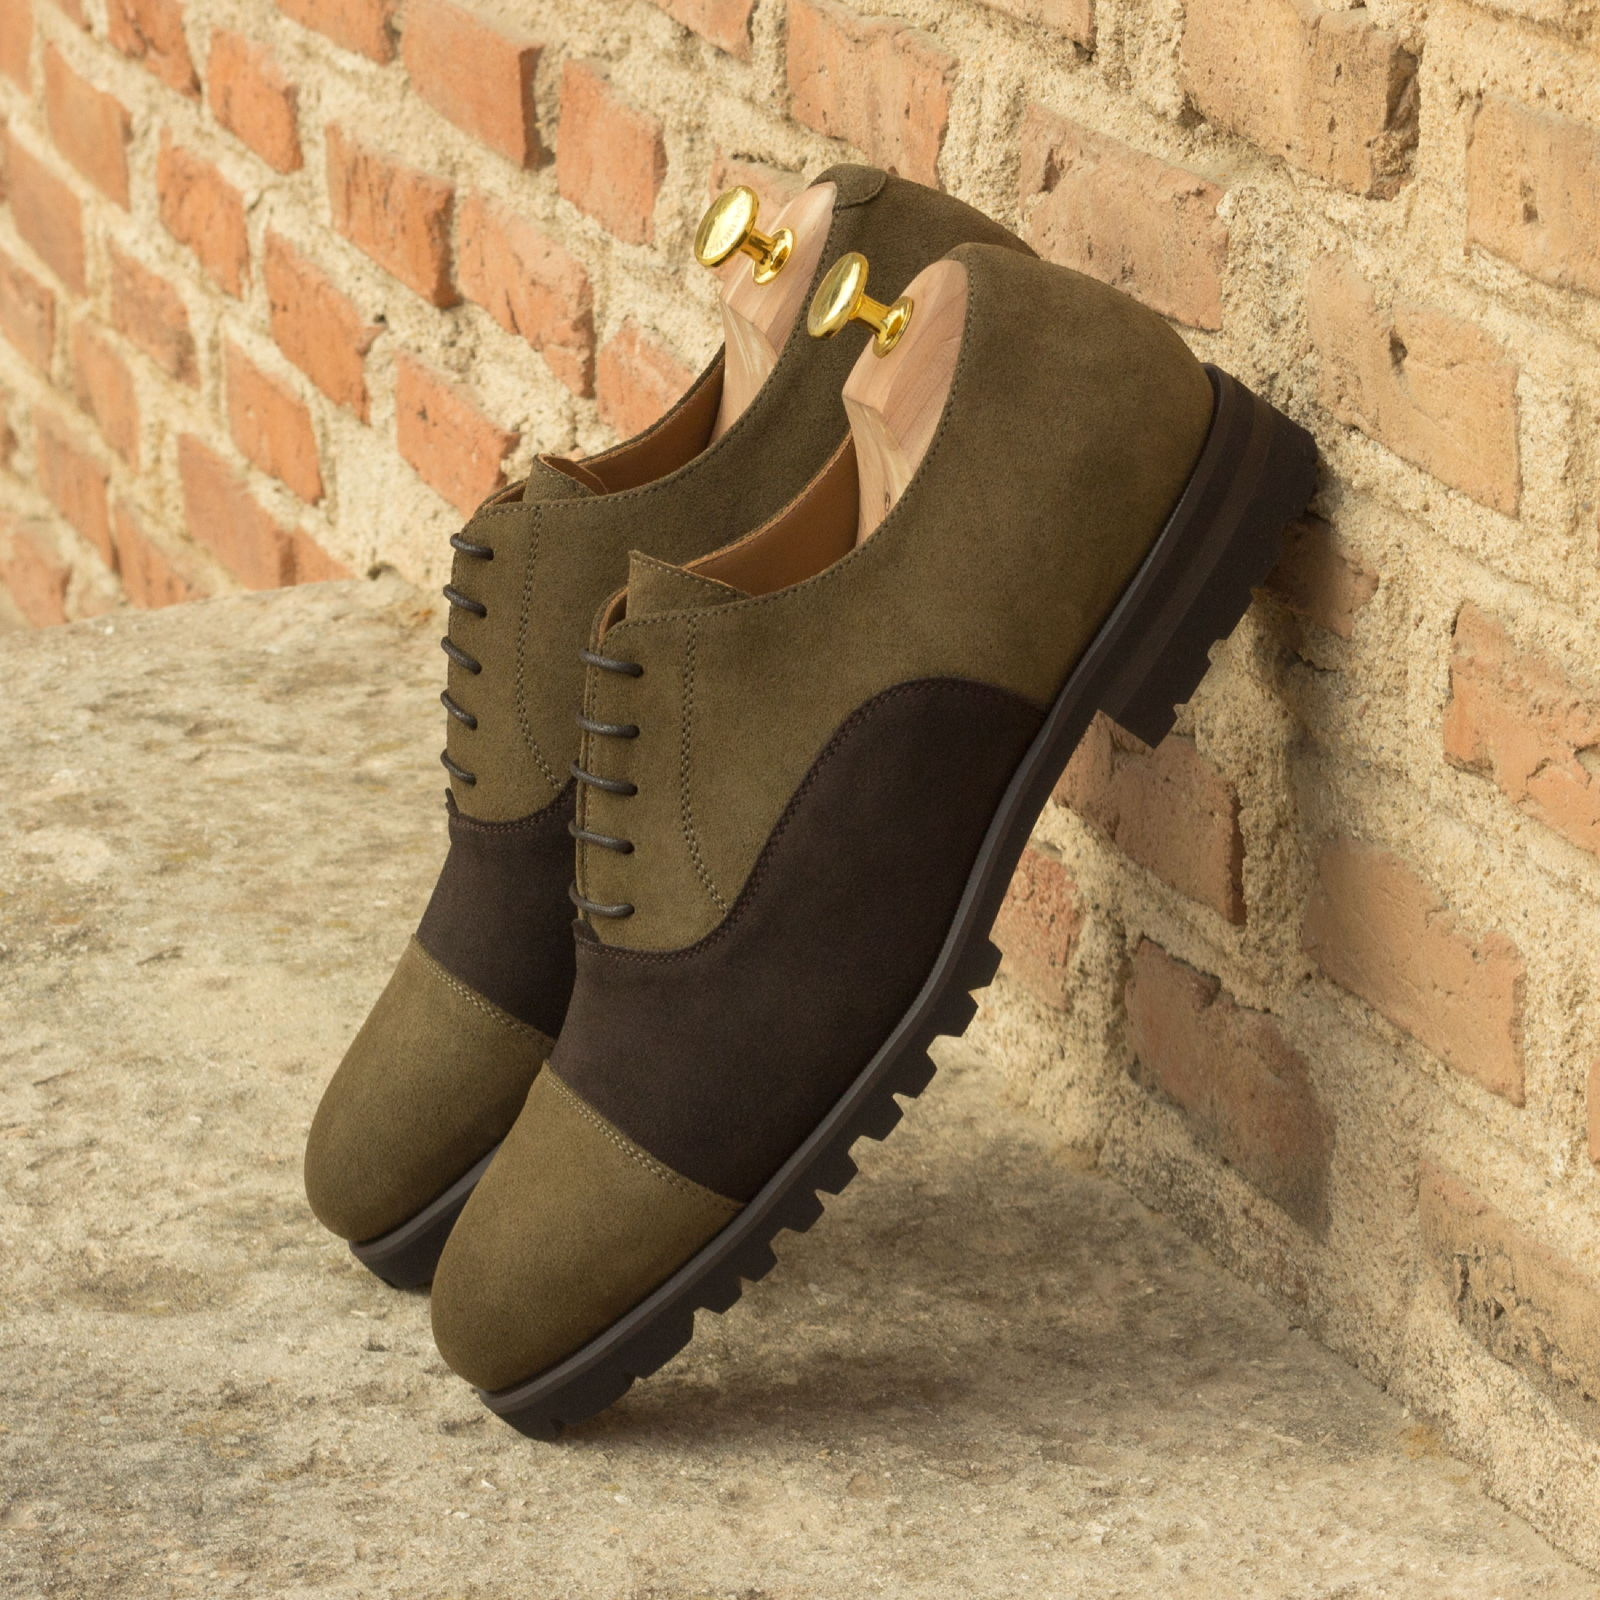 Oxford dark brown lux suede + khaki lux suede : 240€